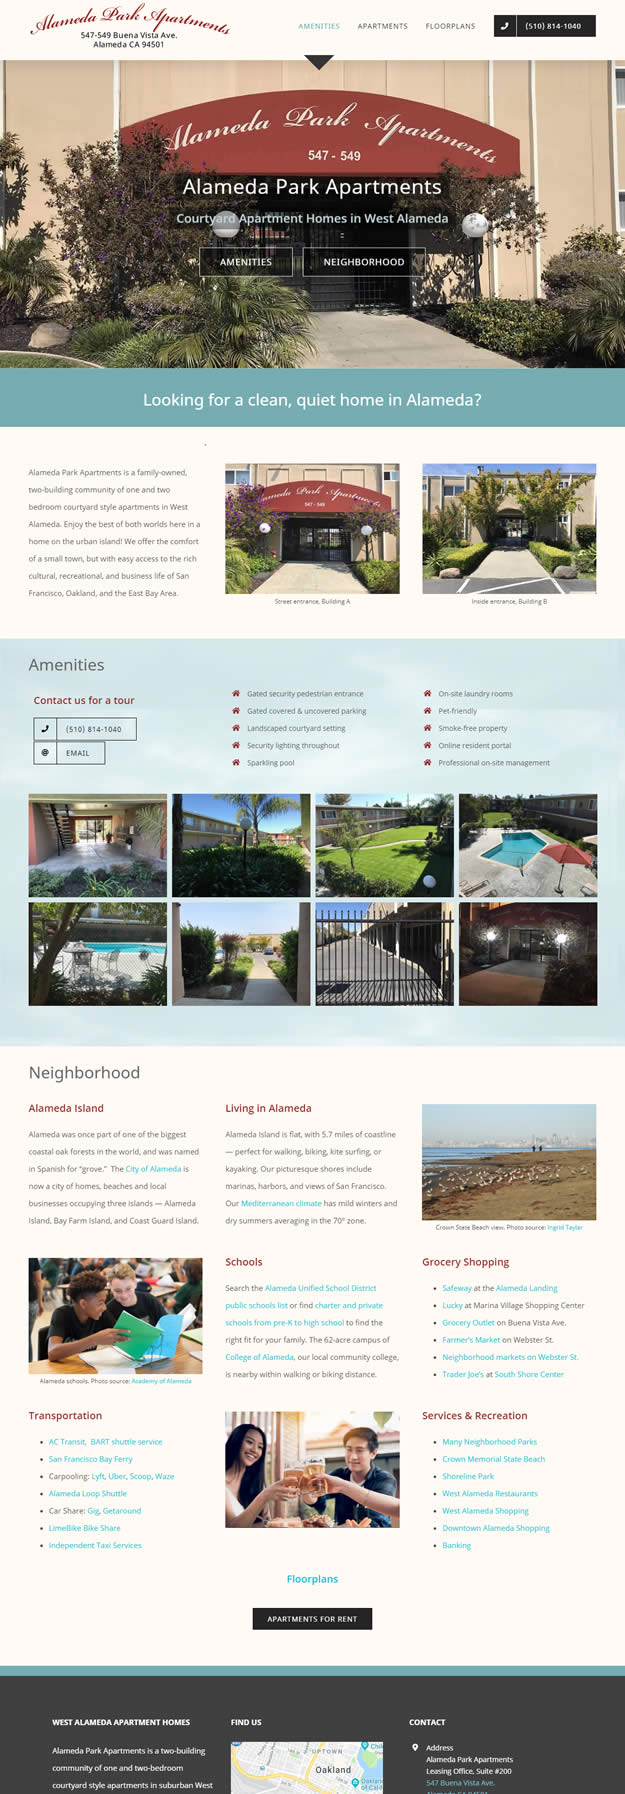 Alameda Park Apartments home page